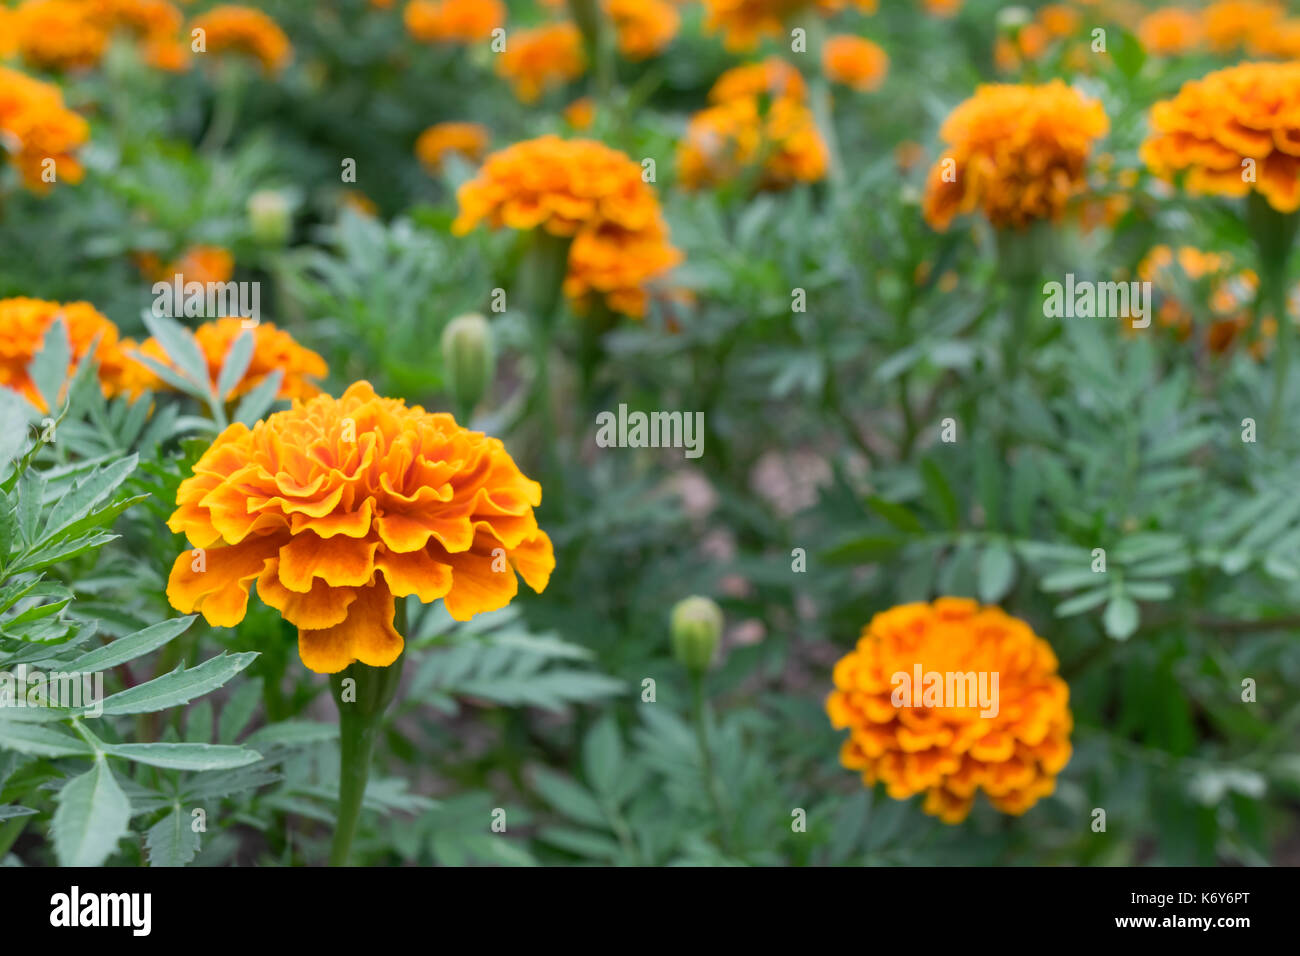 Orange And Yellow Color Of Marigold Flowers In The Garden Or Park